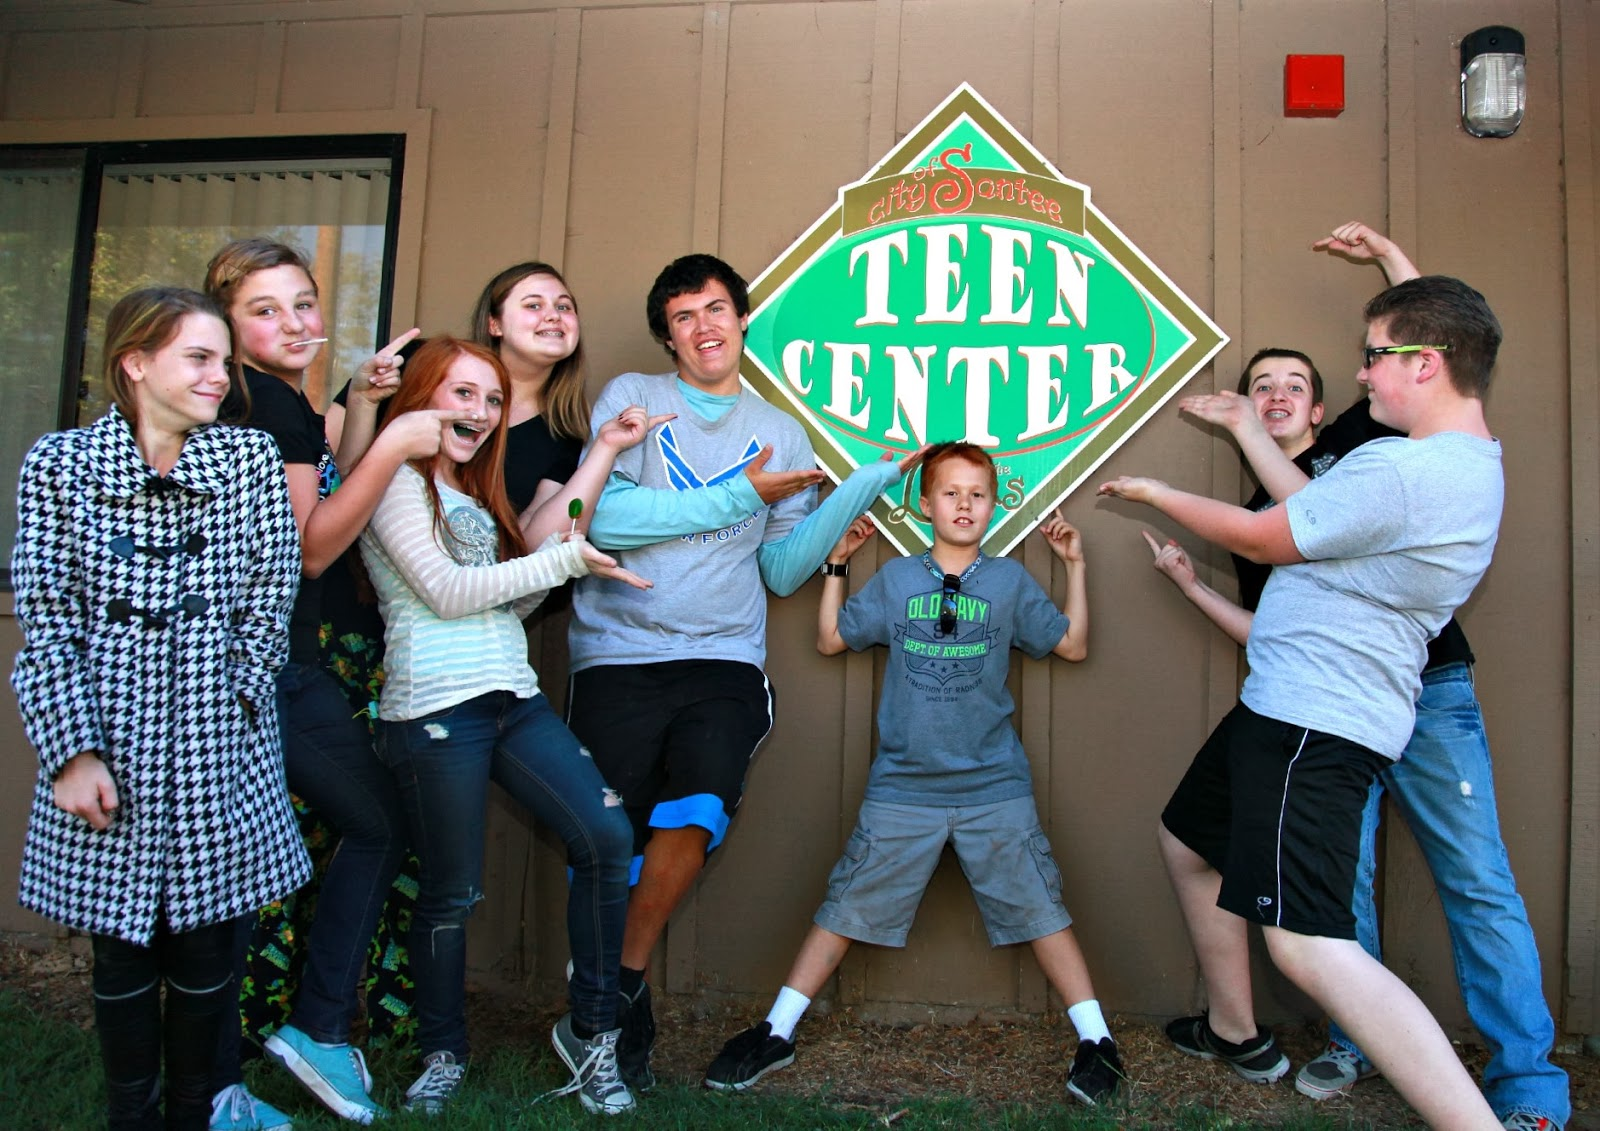 About The Santee Teen Center 113